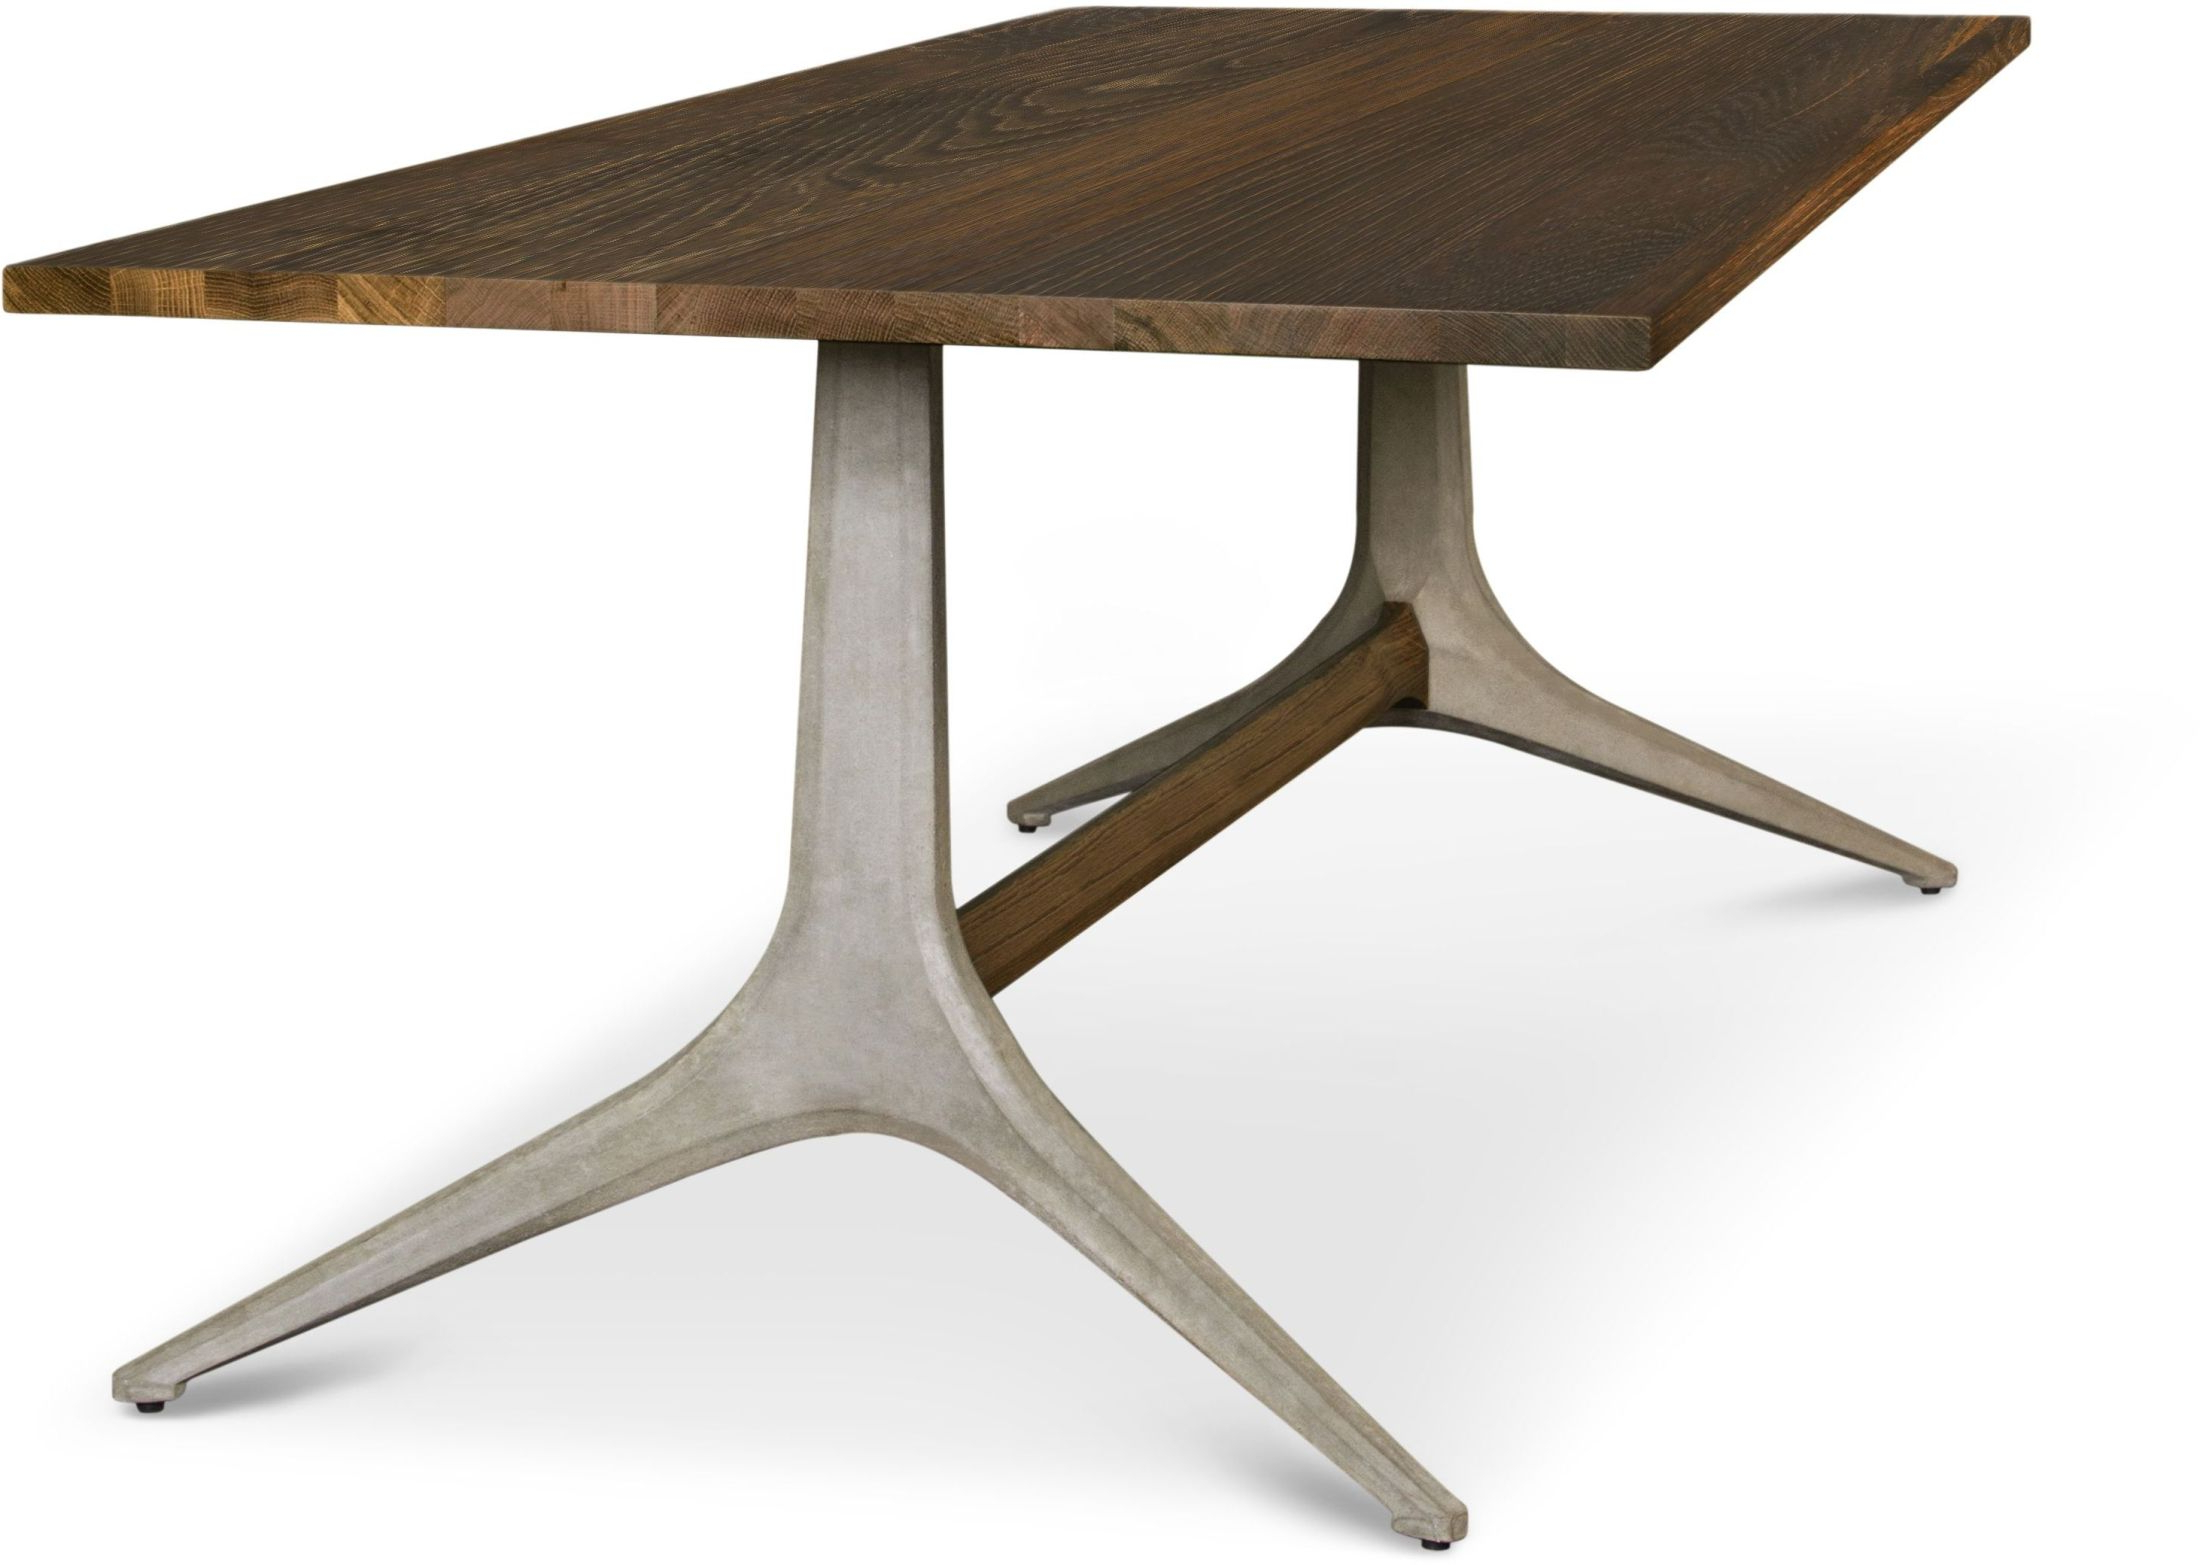 """Well Known Dining Tables In Smoked Seared Oak With Regard To Kahn 86"""" Smoked Wood Dining Table, Hgda524, Nuevo (View 28 of 30)"""